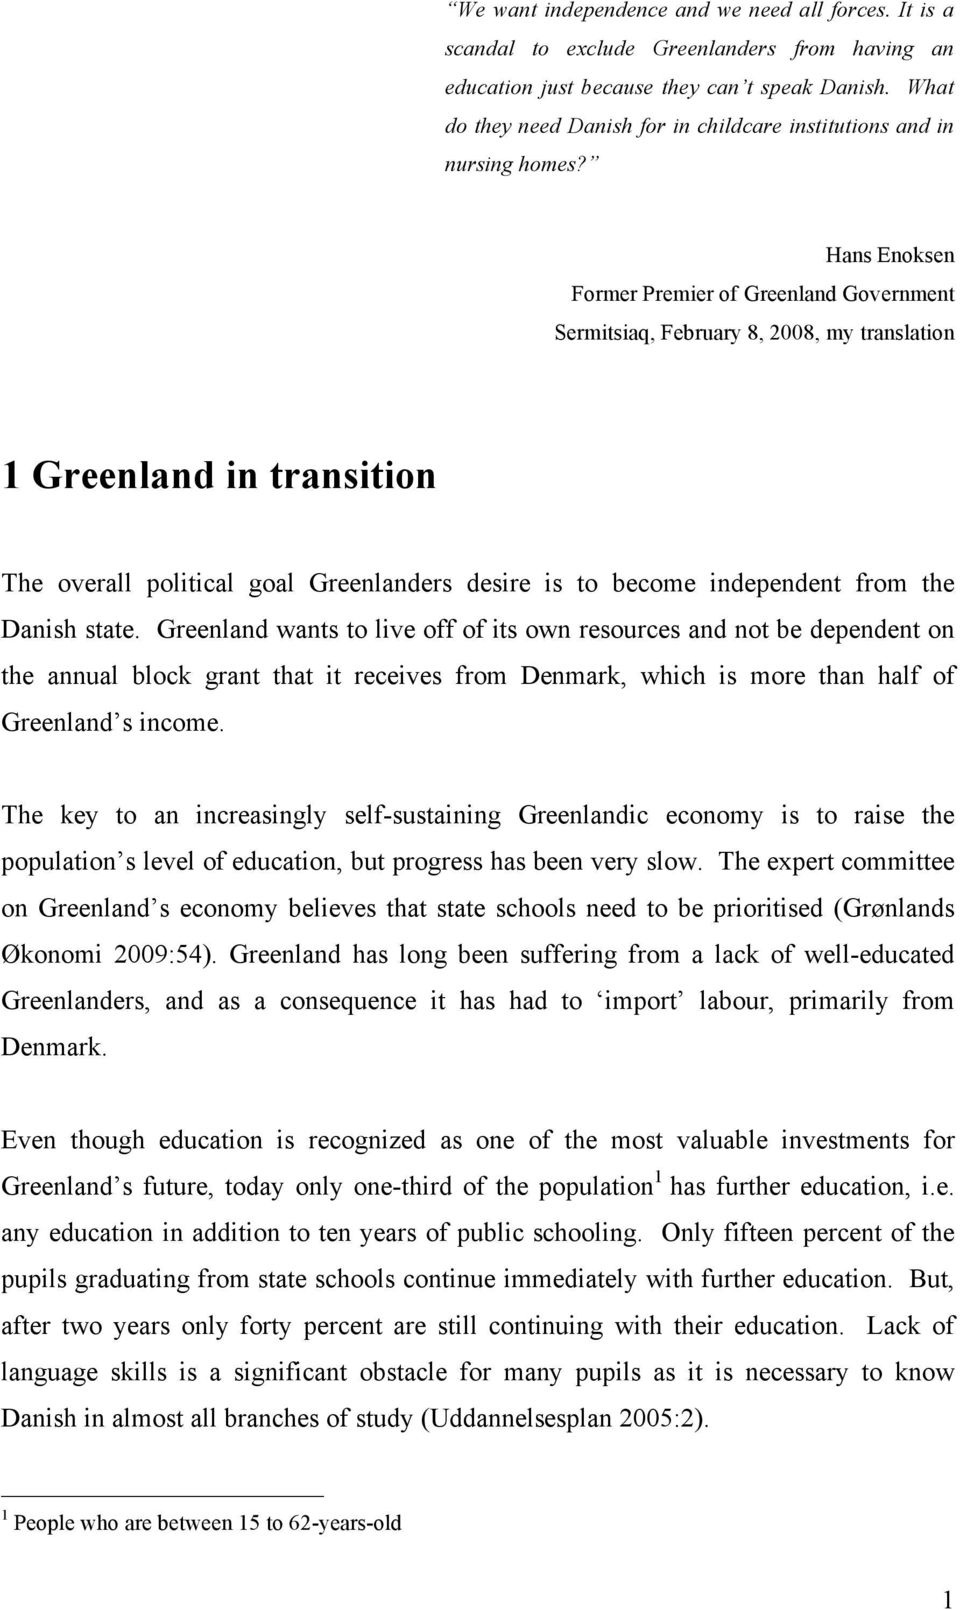 Hans Enoksen Former Premier of Greenland Government Sermitsiaq, February 8, 2008, my translation 1 Greenland in transition The overall political goal Greenlanders desire is to become independent from